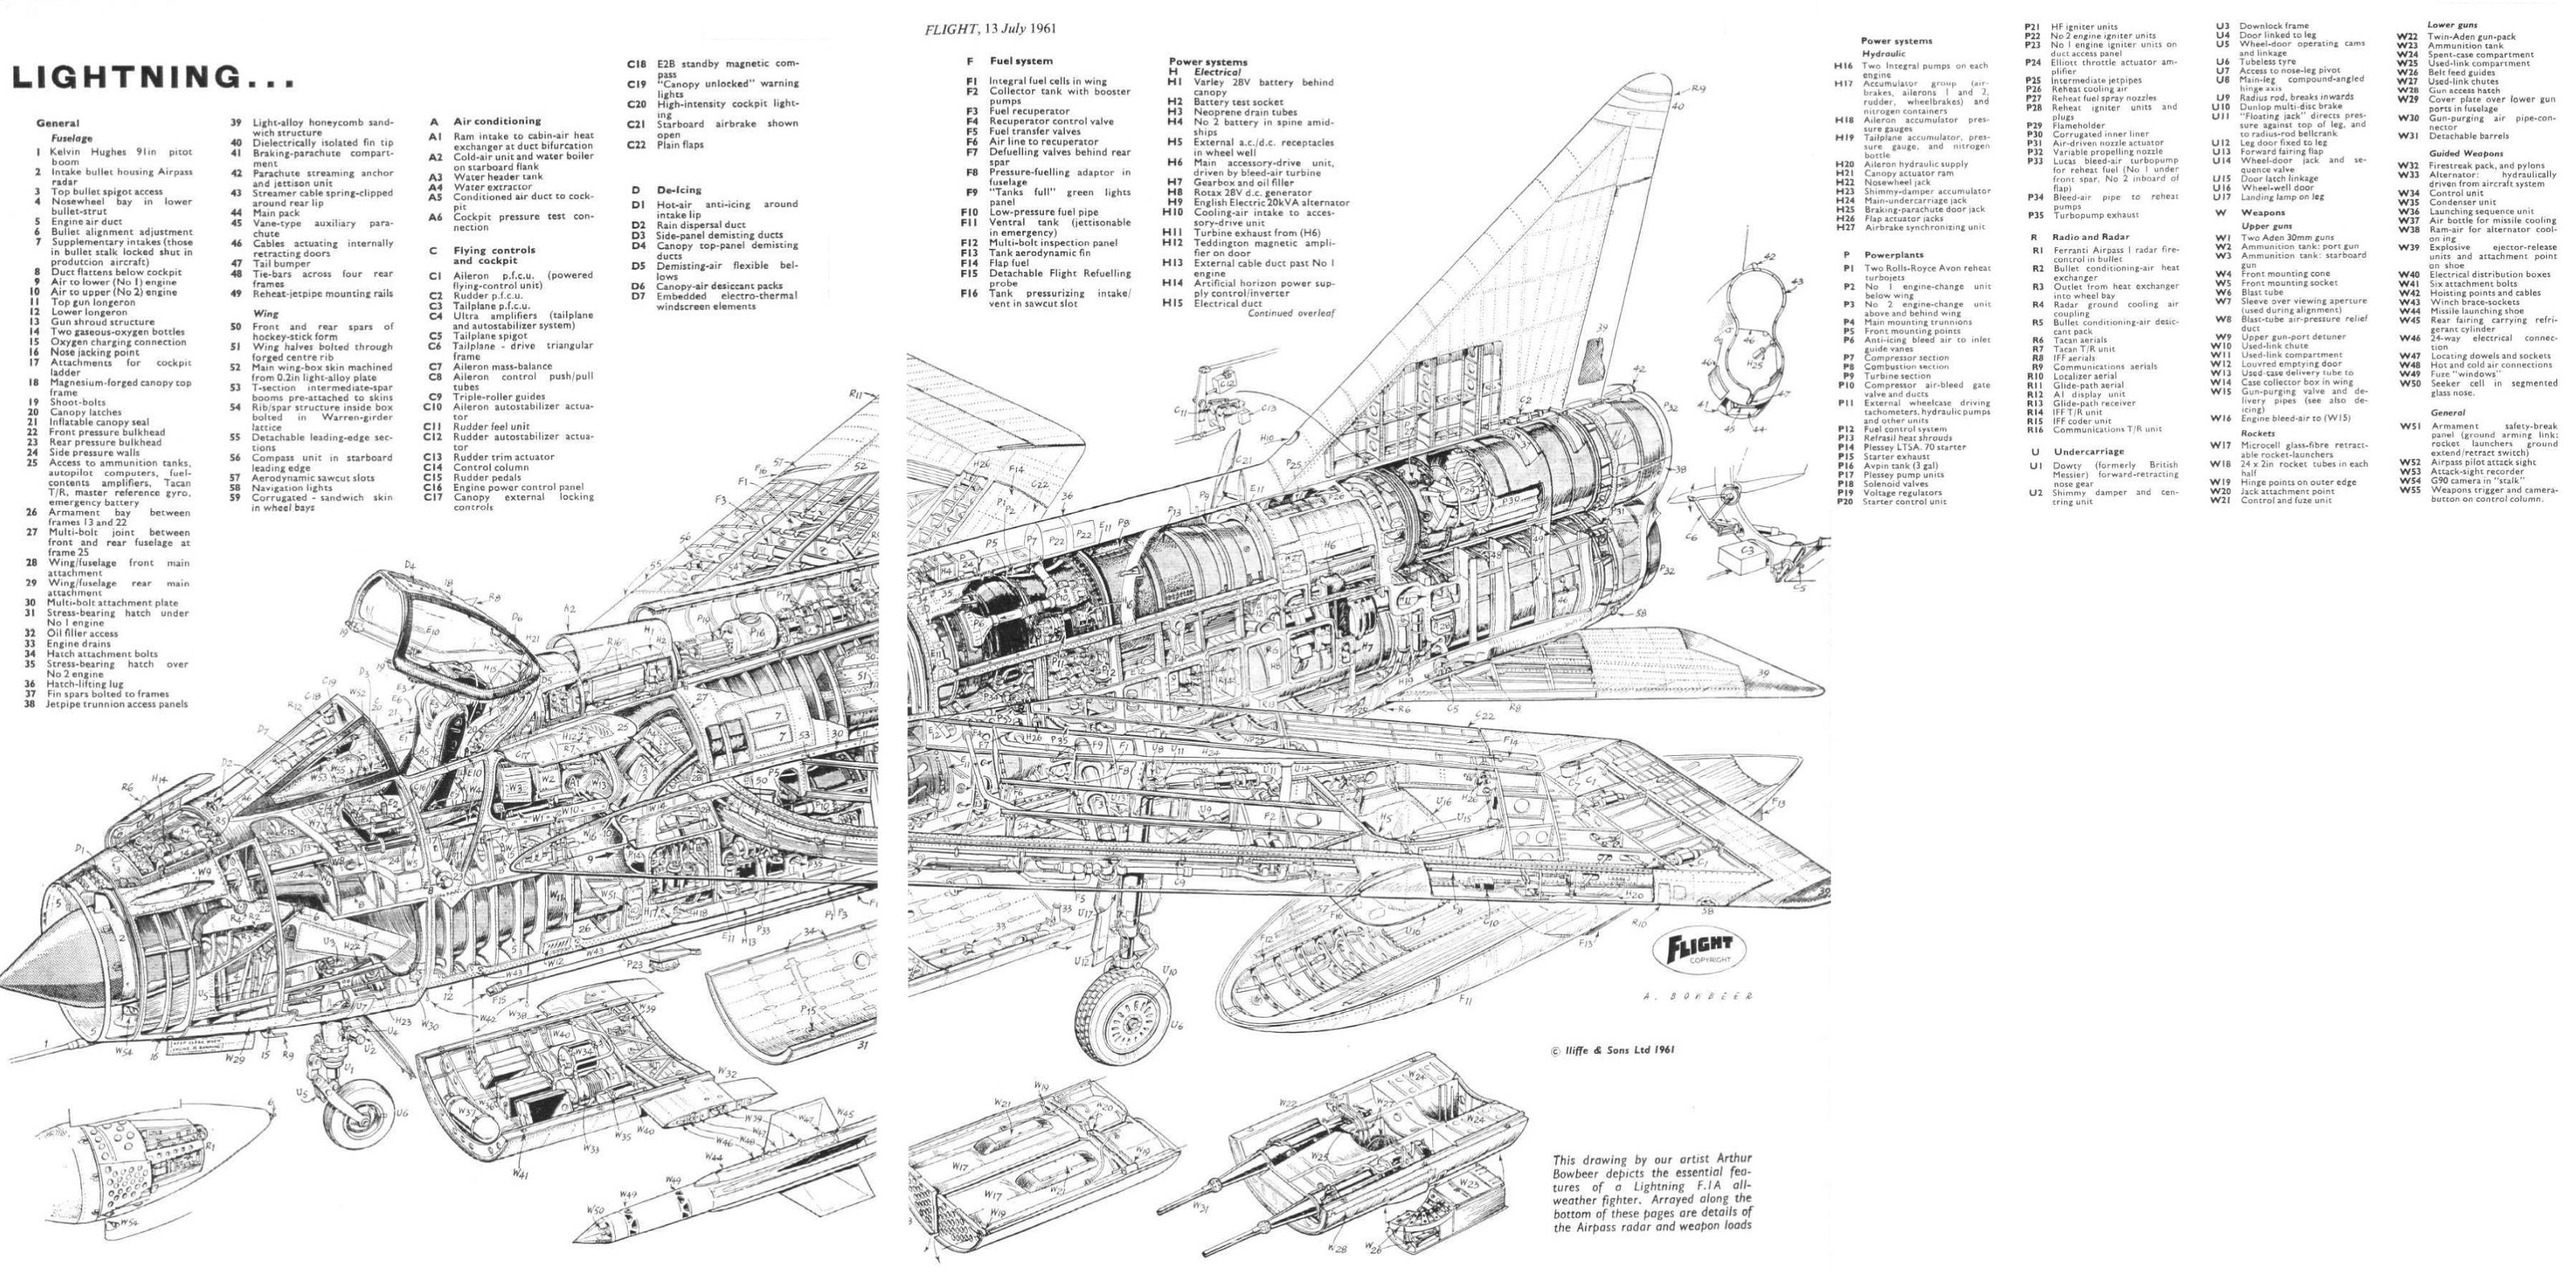 Stunningly Detailed Cutaway Of The English Electric Lightning By Arthur Bowbeer